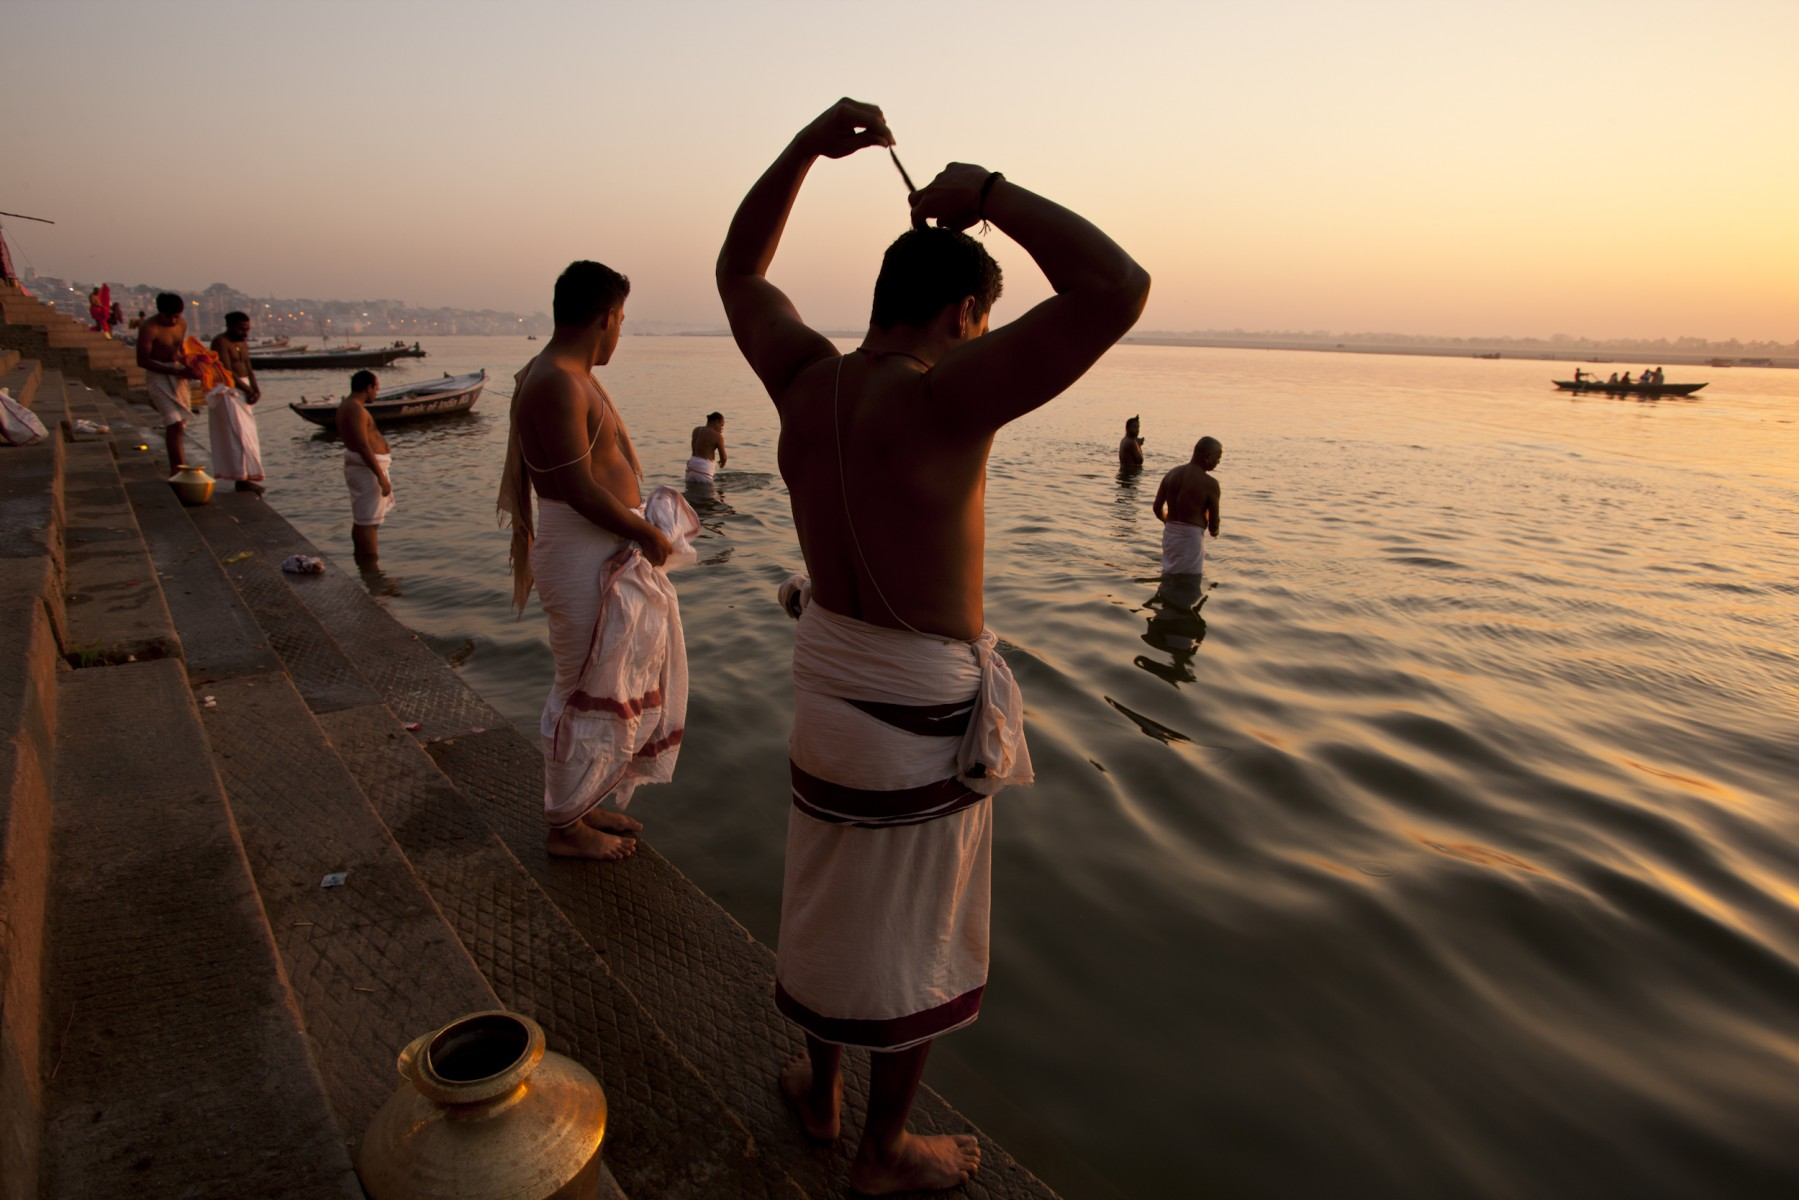 South Indian pilgrims Varanasi